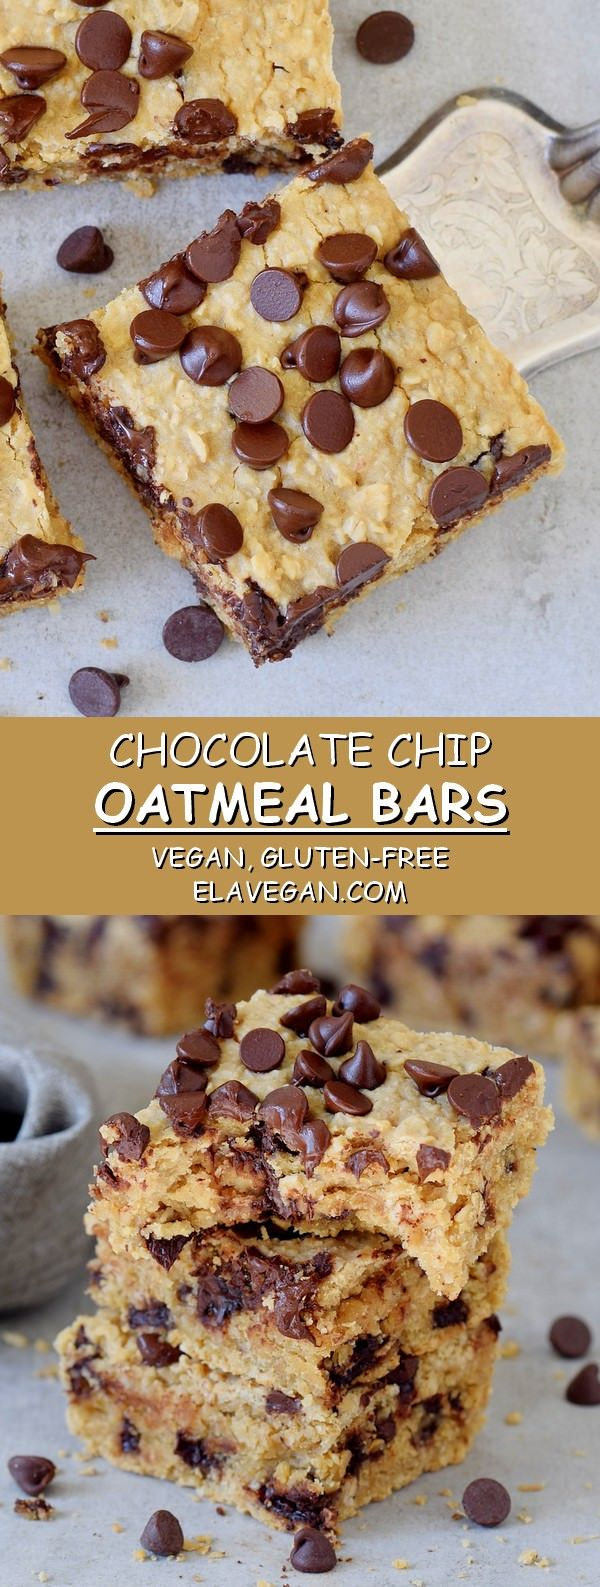 Oatmeal Chocolate Chip Bars | With A Secret Ingredient! - Elavegan